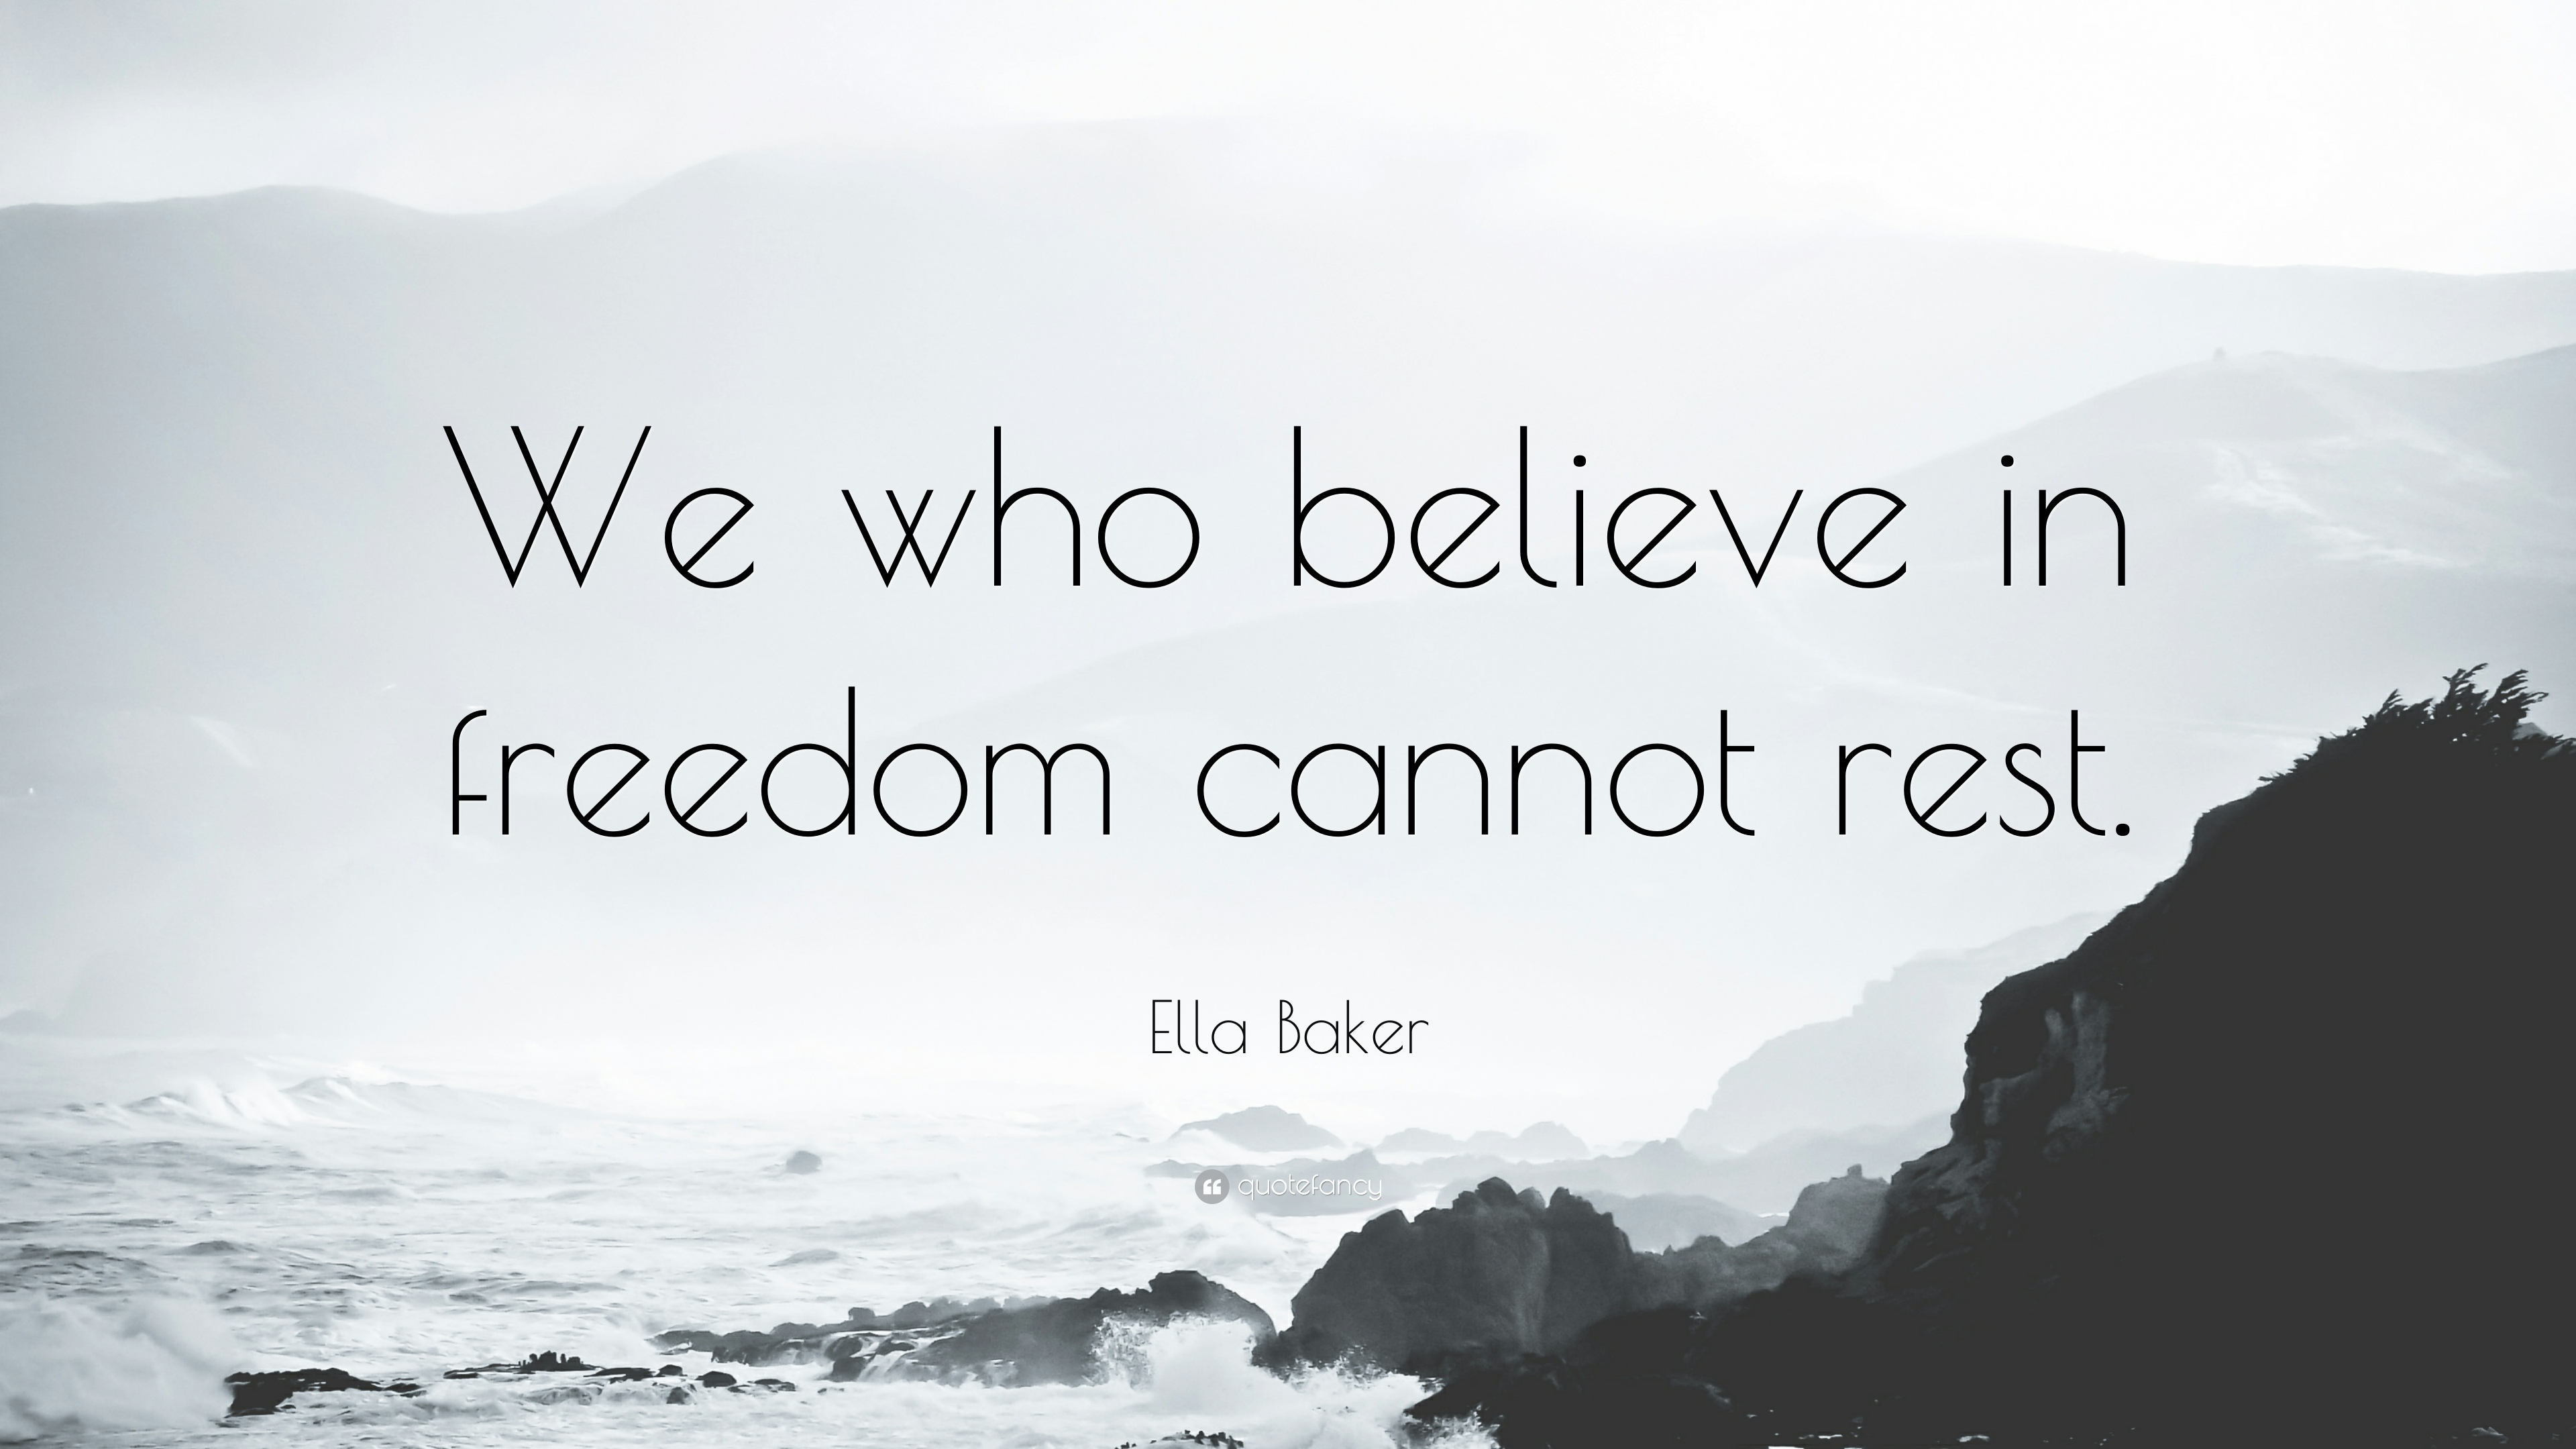 WE WHO BELIEVE IN FREEDOM